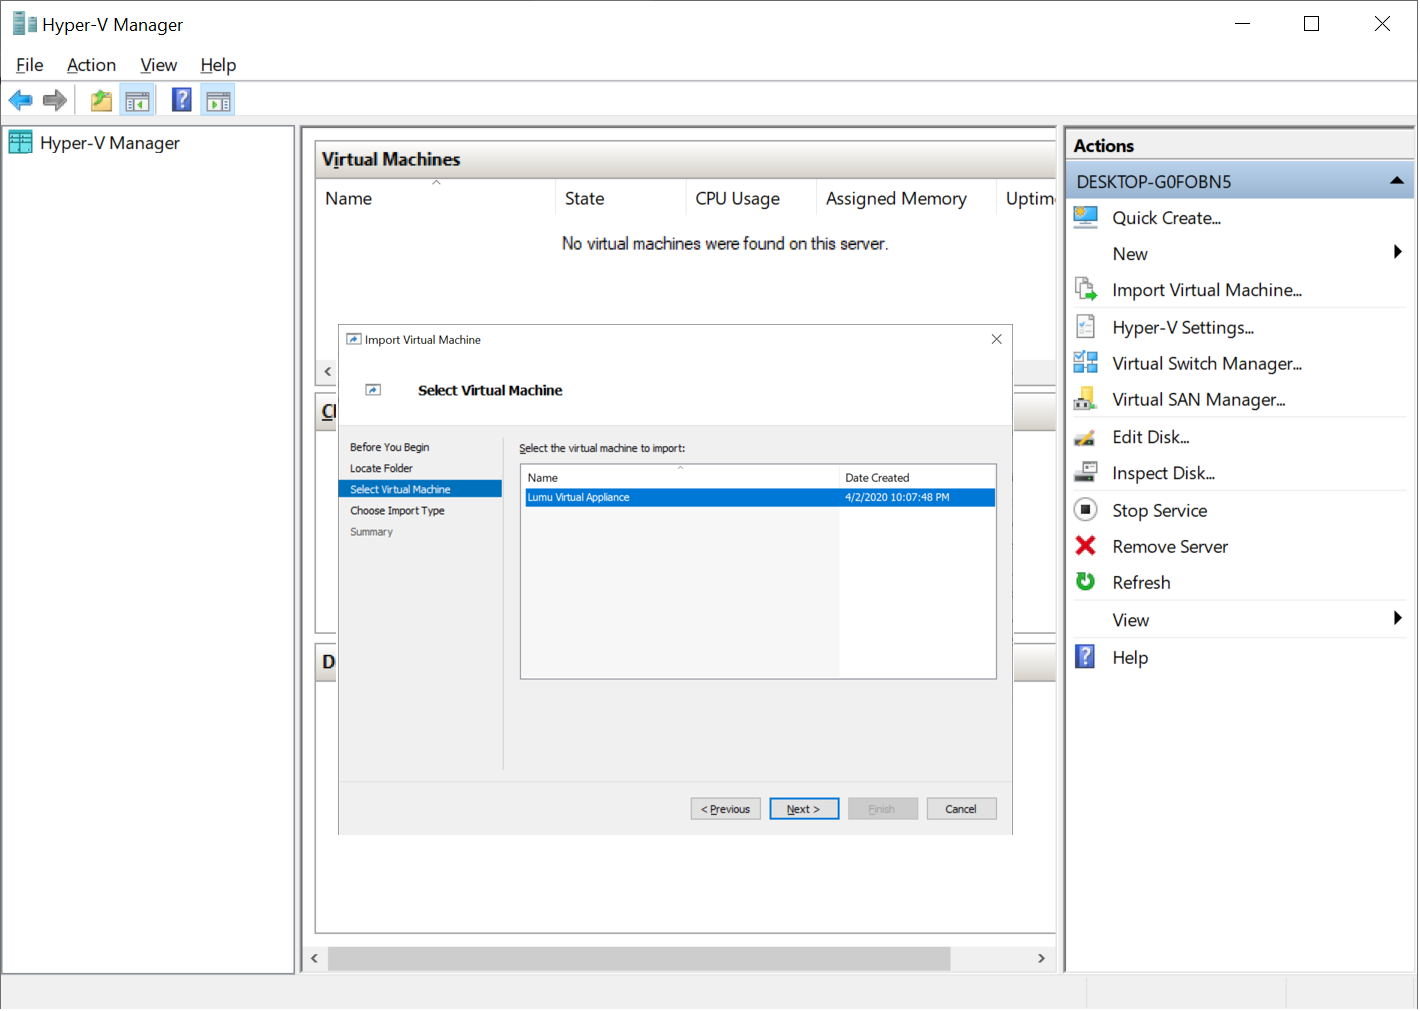 Importing the appliance into Hyper-V